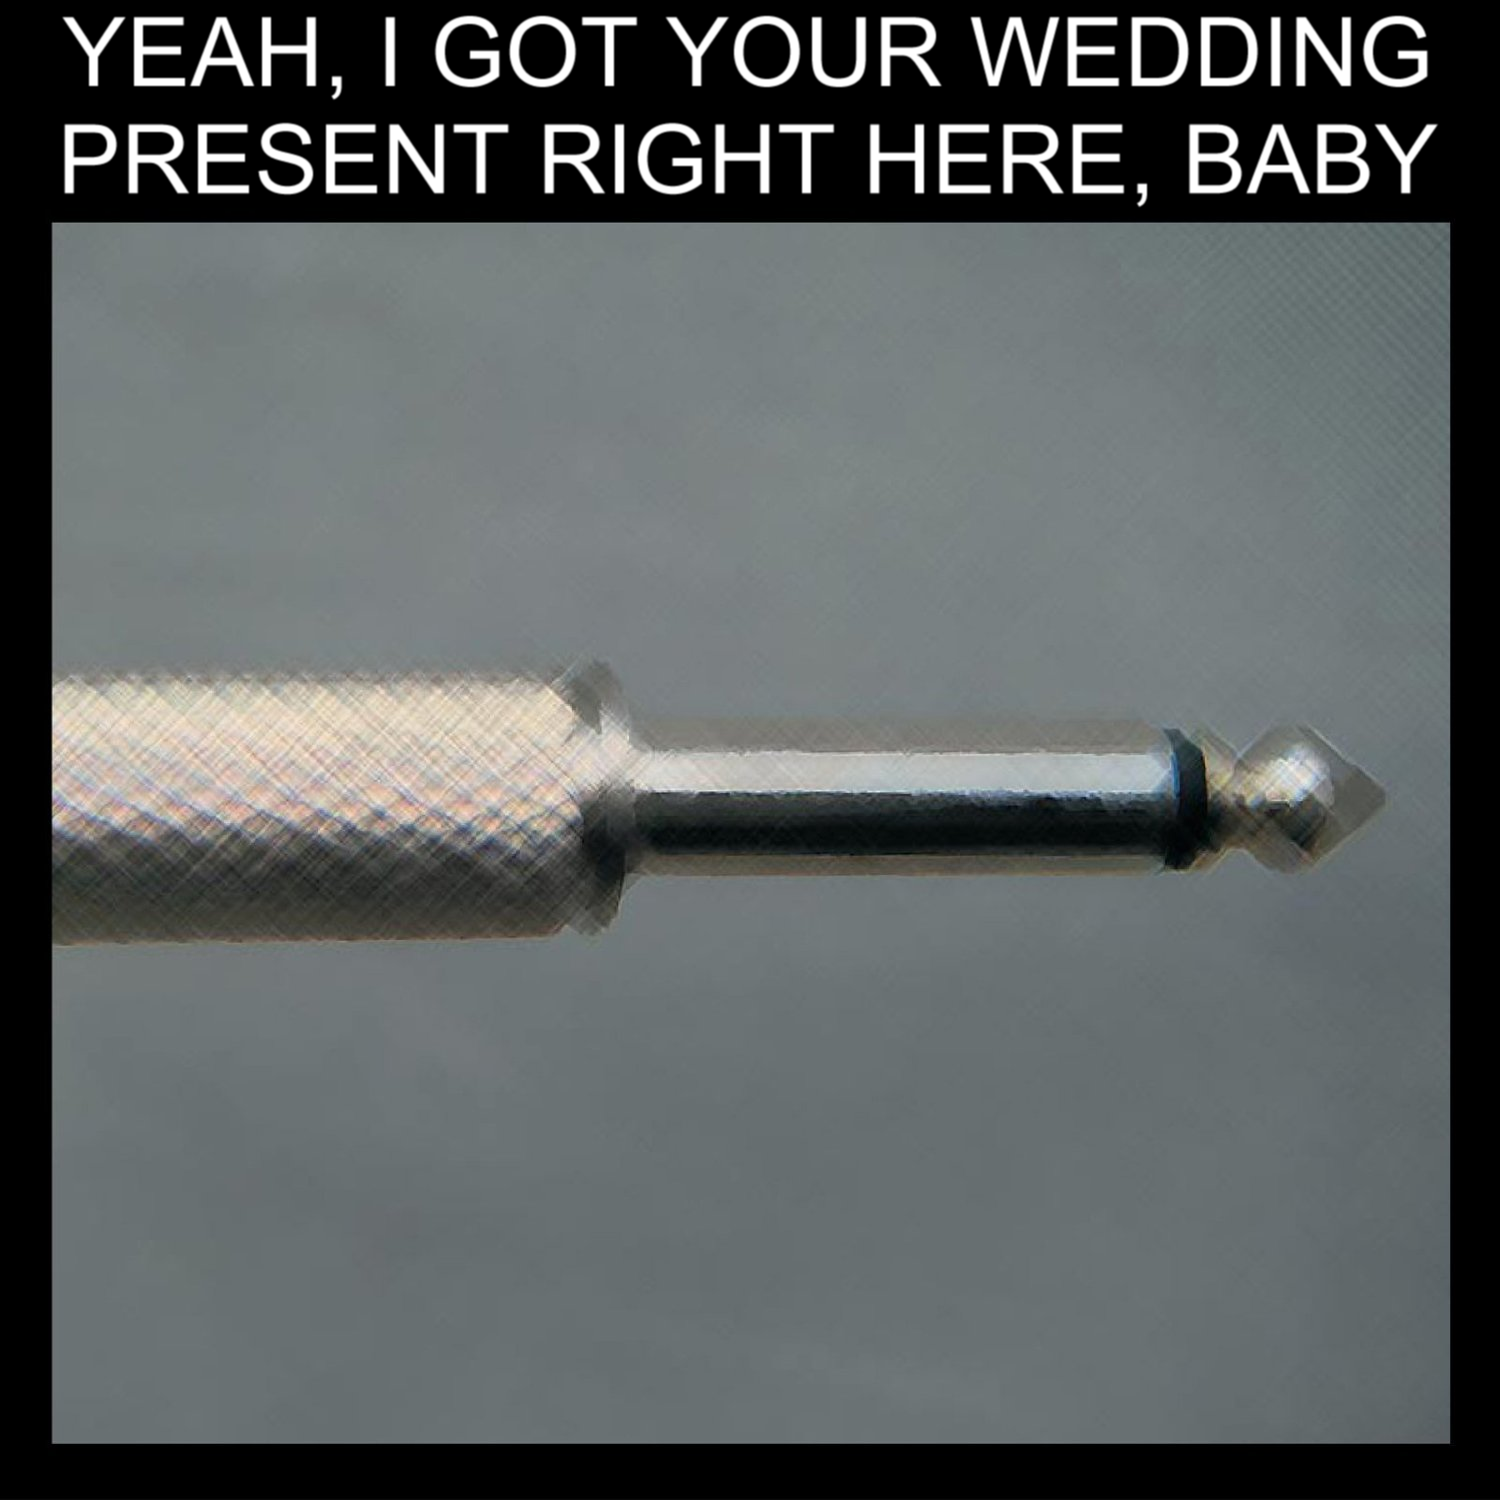 Album cover parody of Plugged In: An Evening At Shepherds Bush by Wedding Present